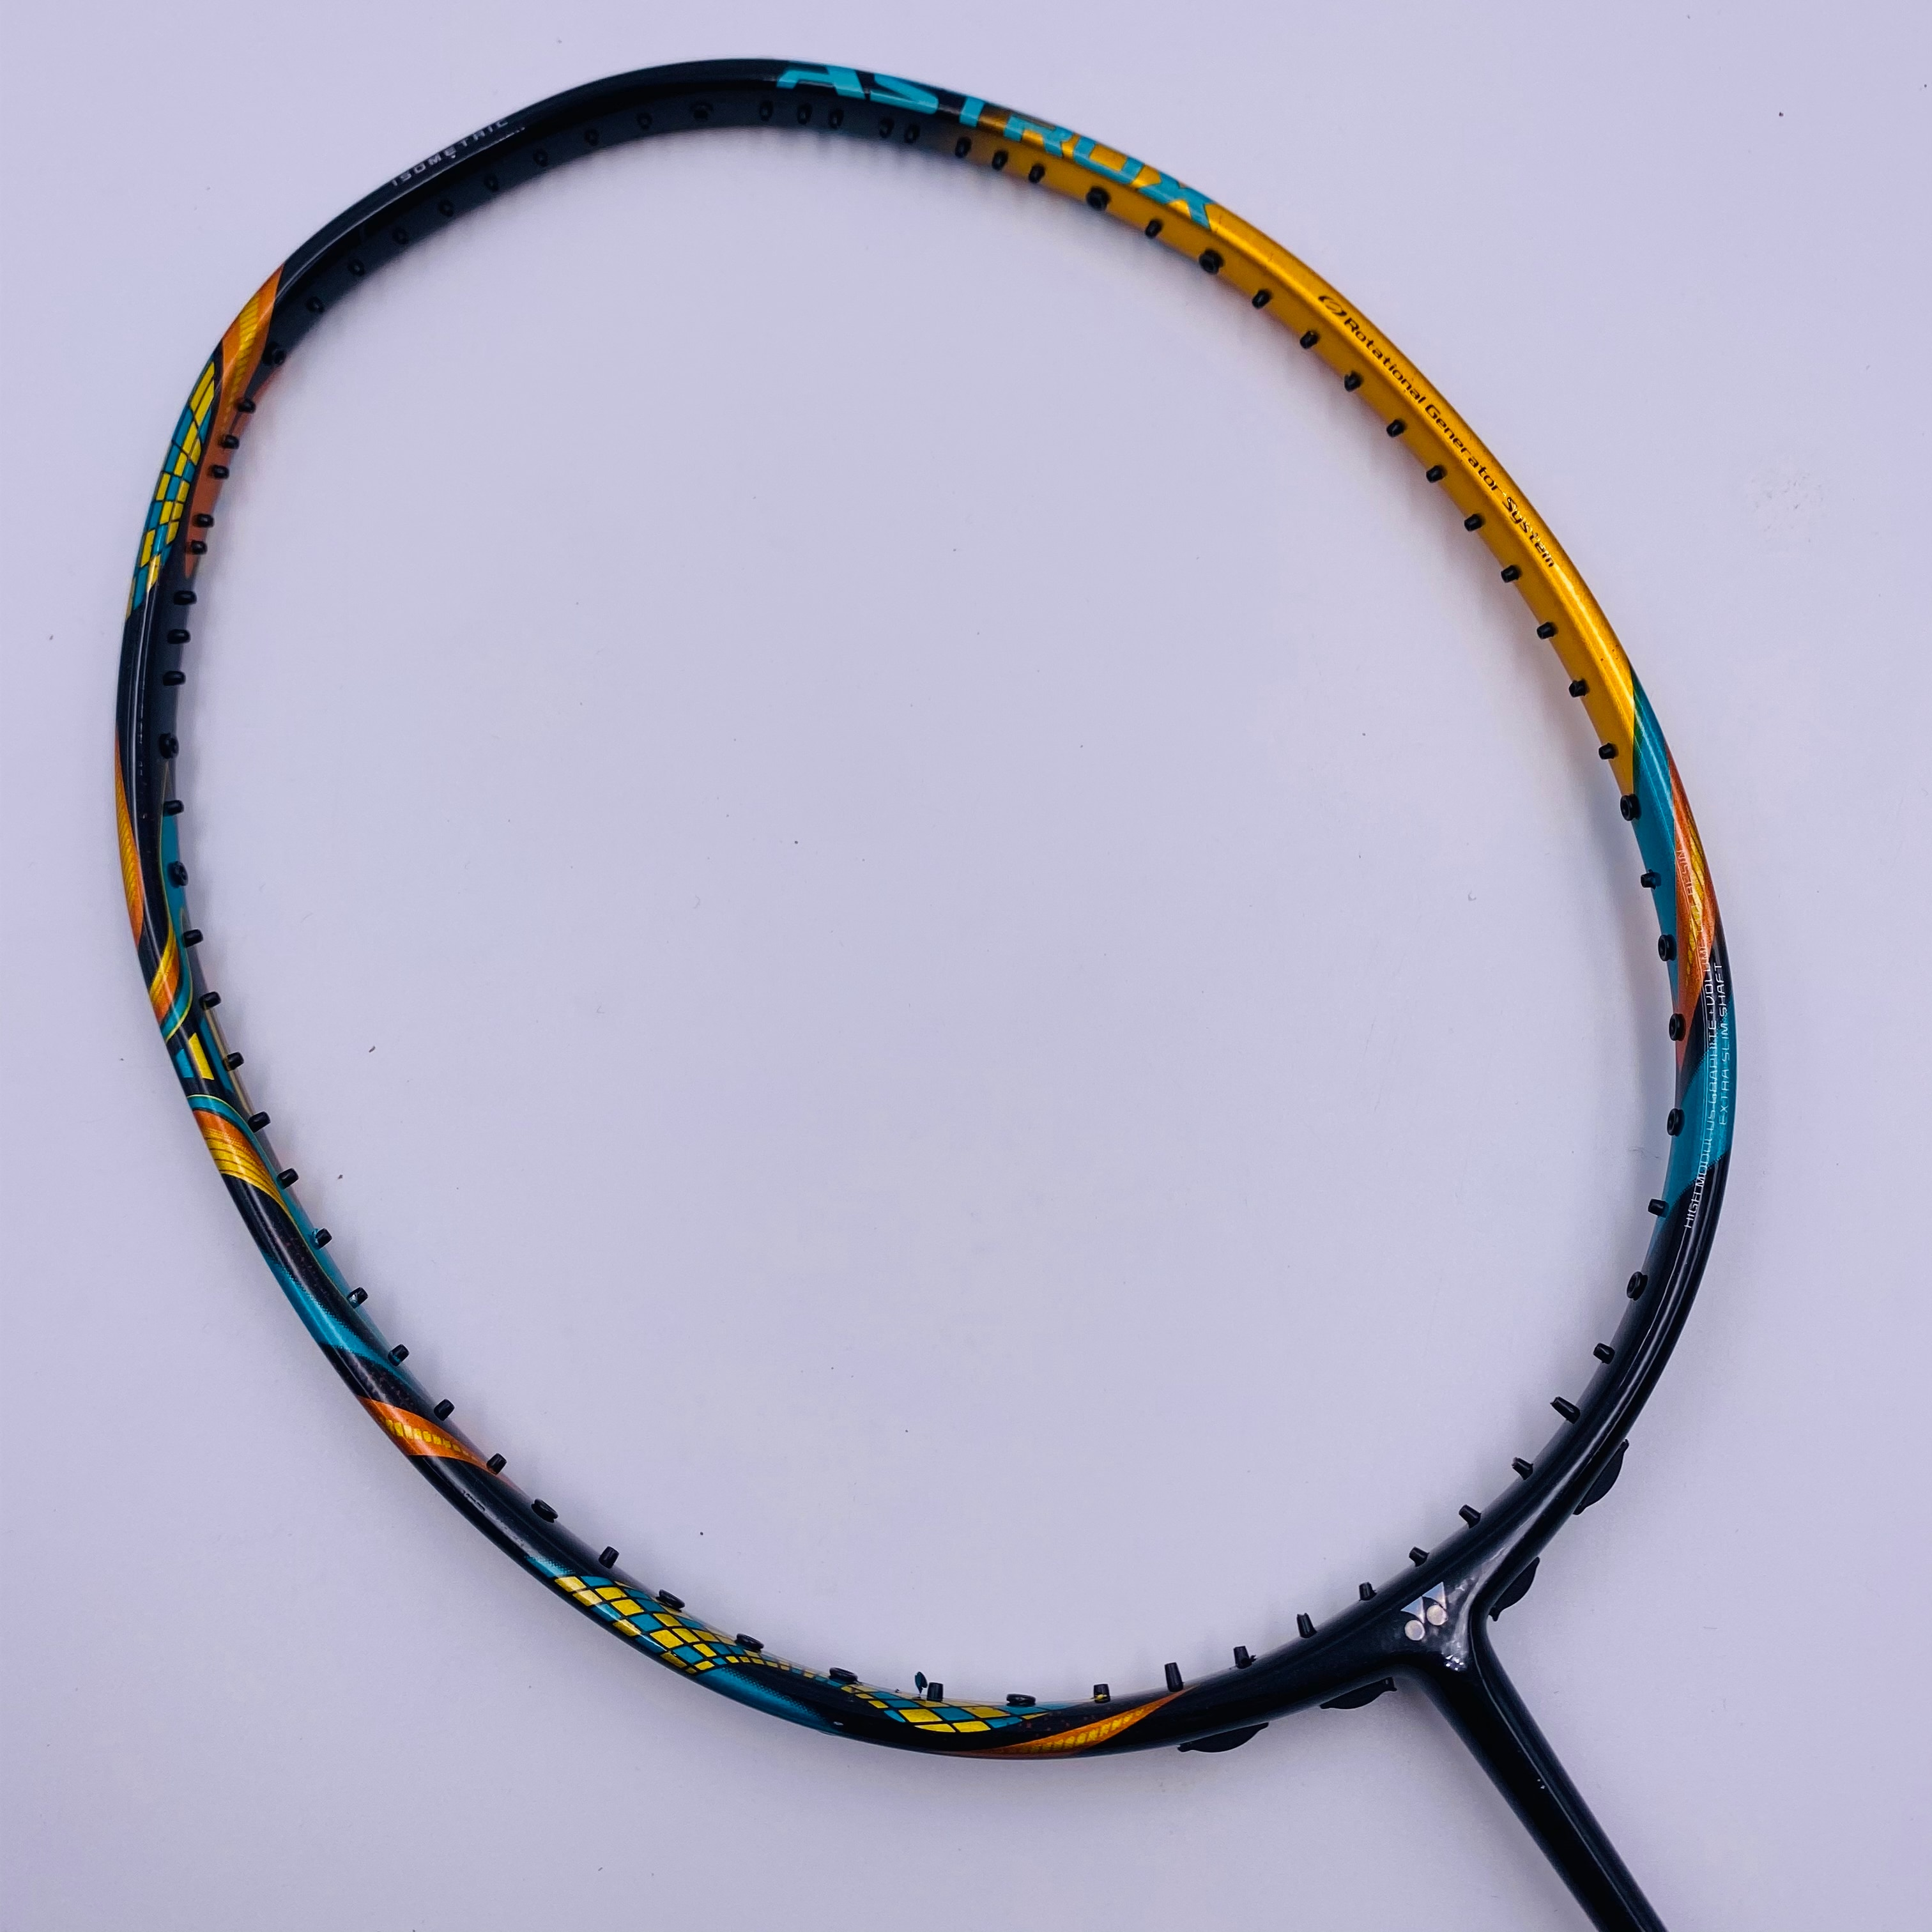 Yonex's new badminton racket AX88DPRO full carbon ultra-light and durable offensive badminton racket Genuine